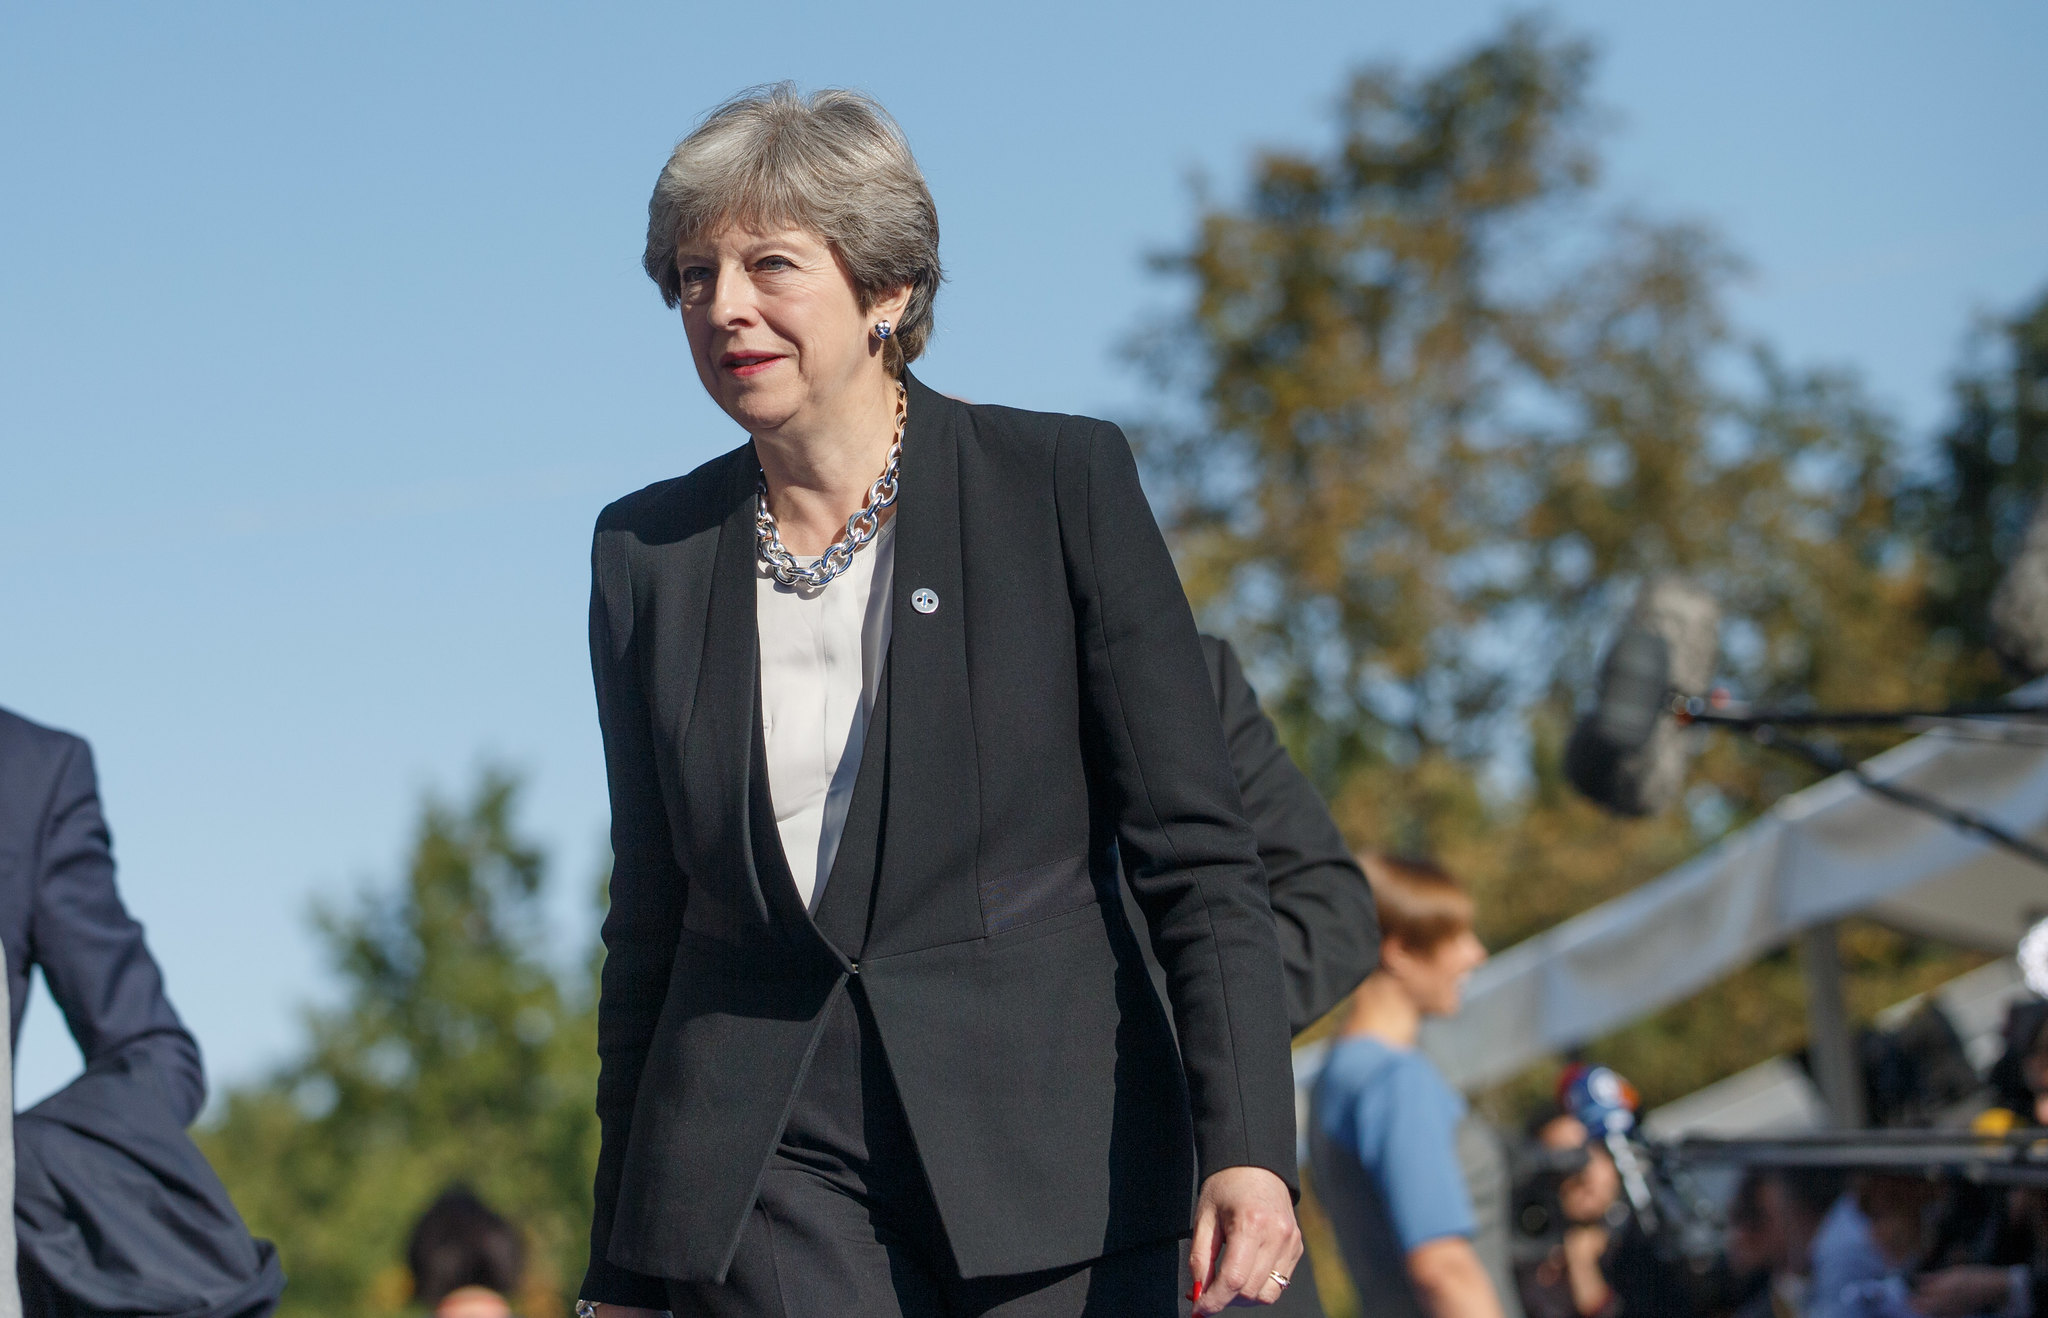 Britain: Theresa May resignation – let's kick out the rest of the Tories!